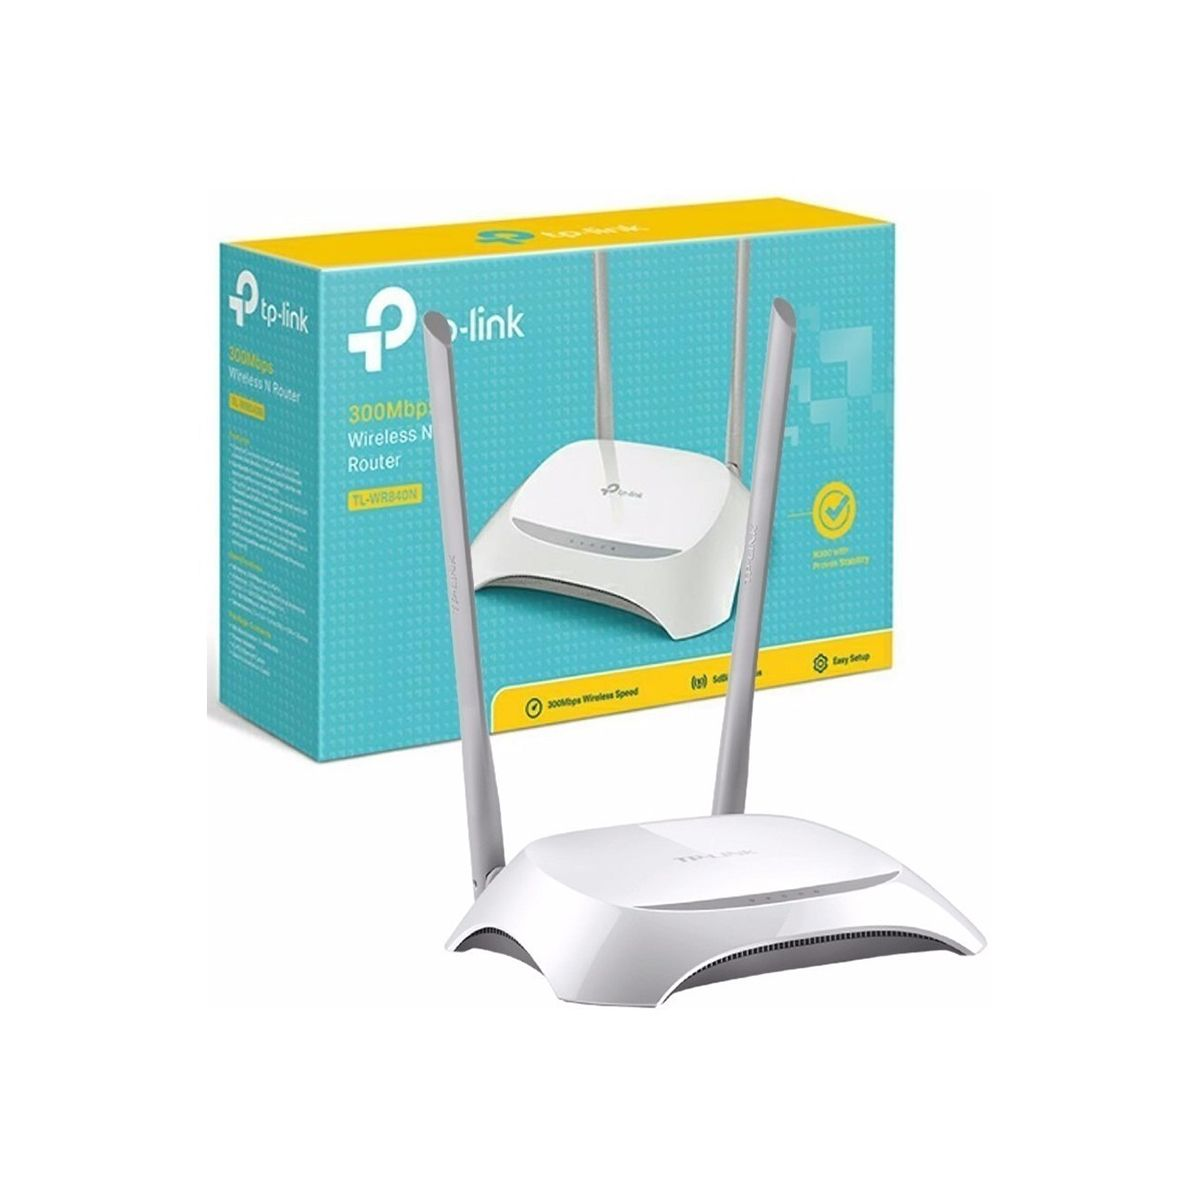 Router Inalámbrico N a 300Mbps TL-WR840N